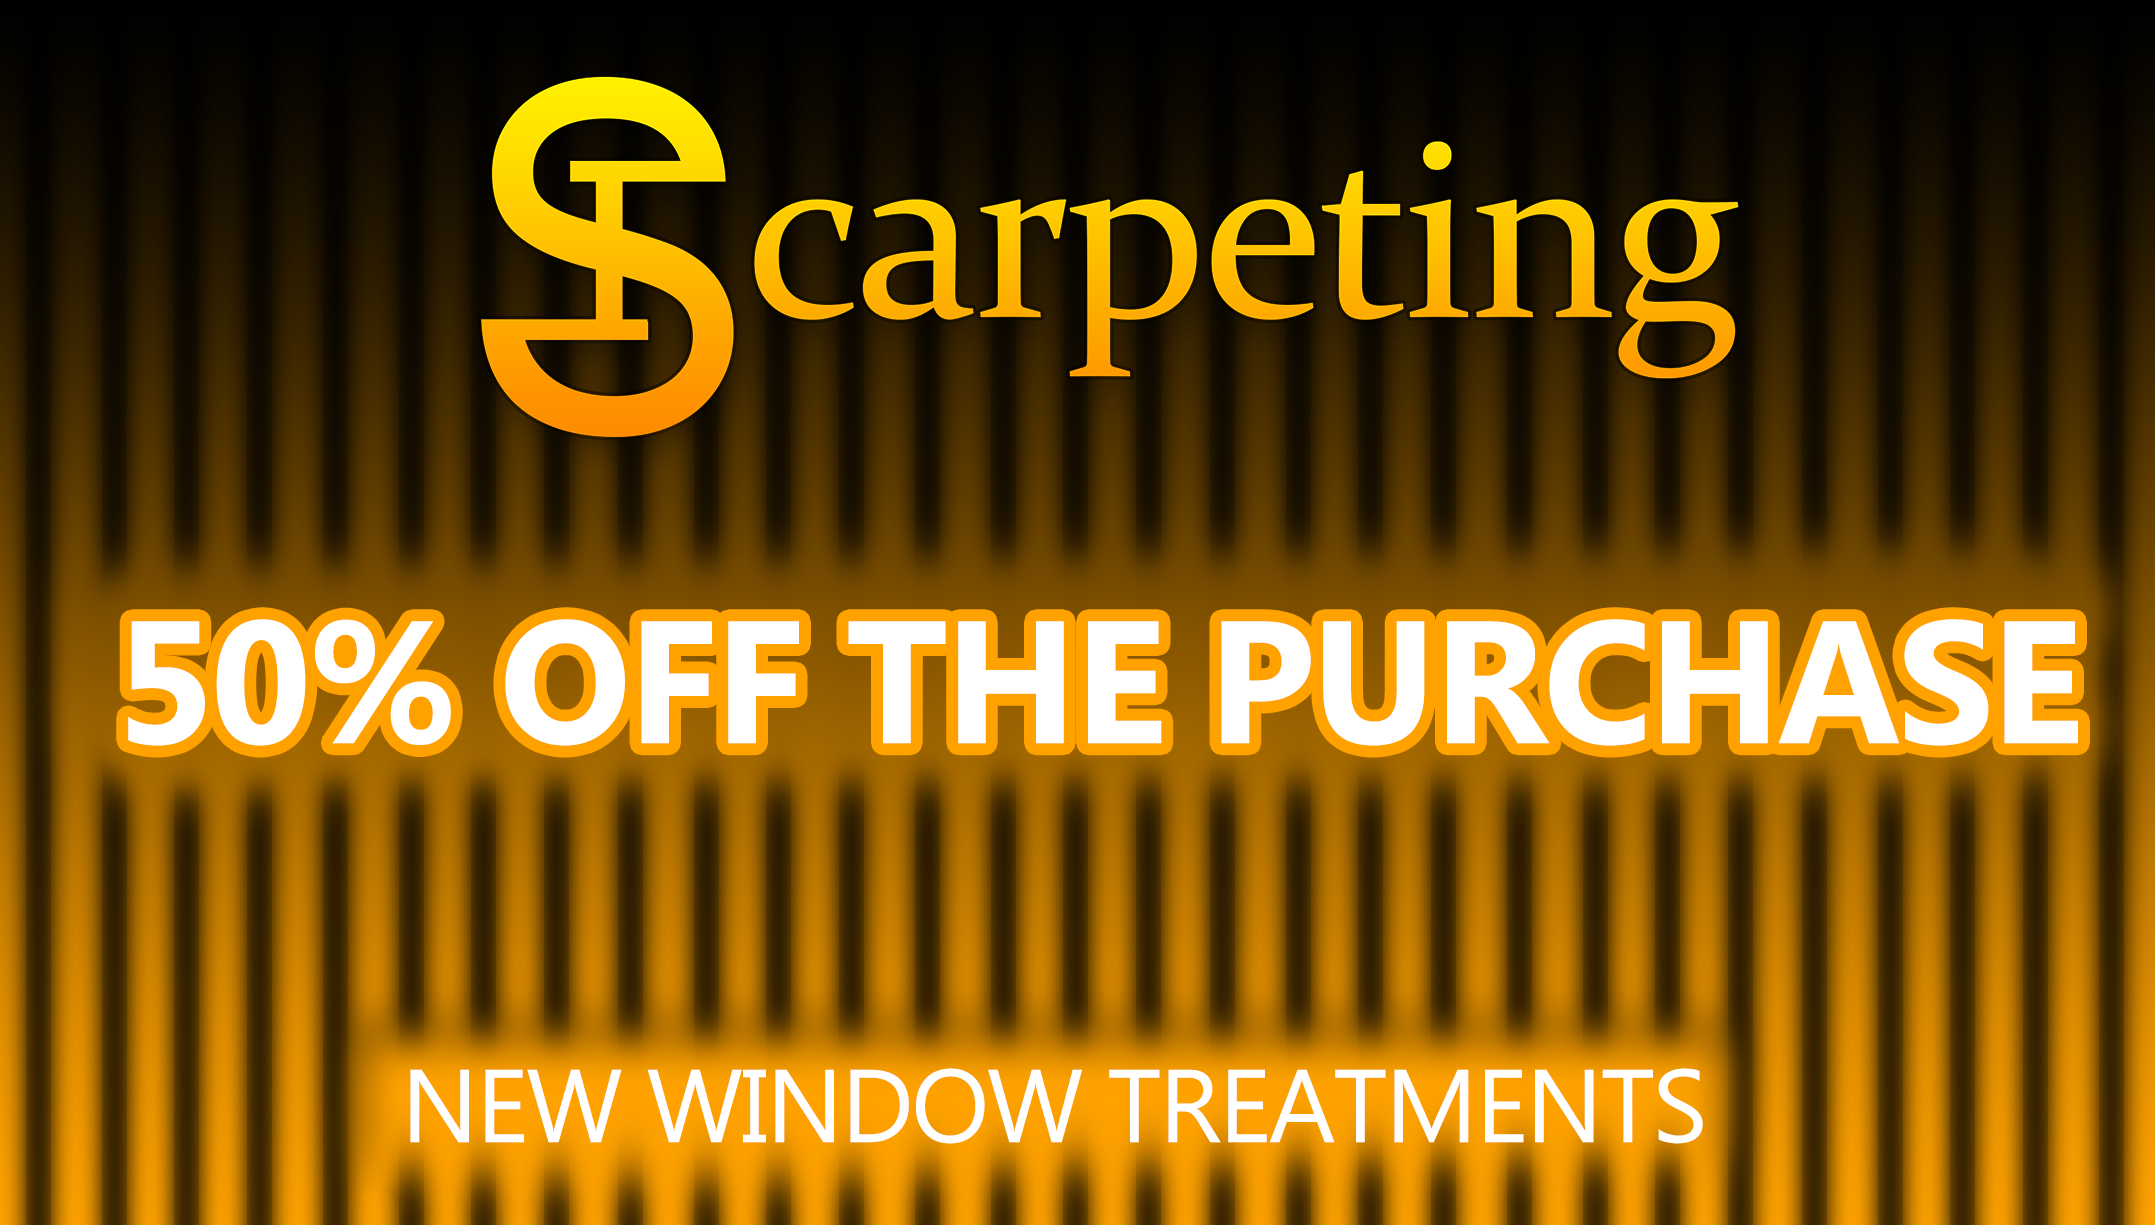 50 PERCENT OFF THE PURCHASE OF ANY NEW WINDOW TREATMENTS